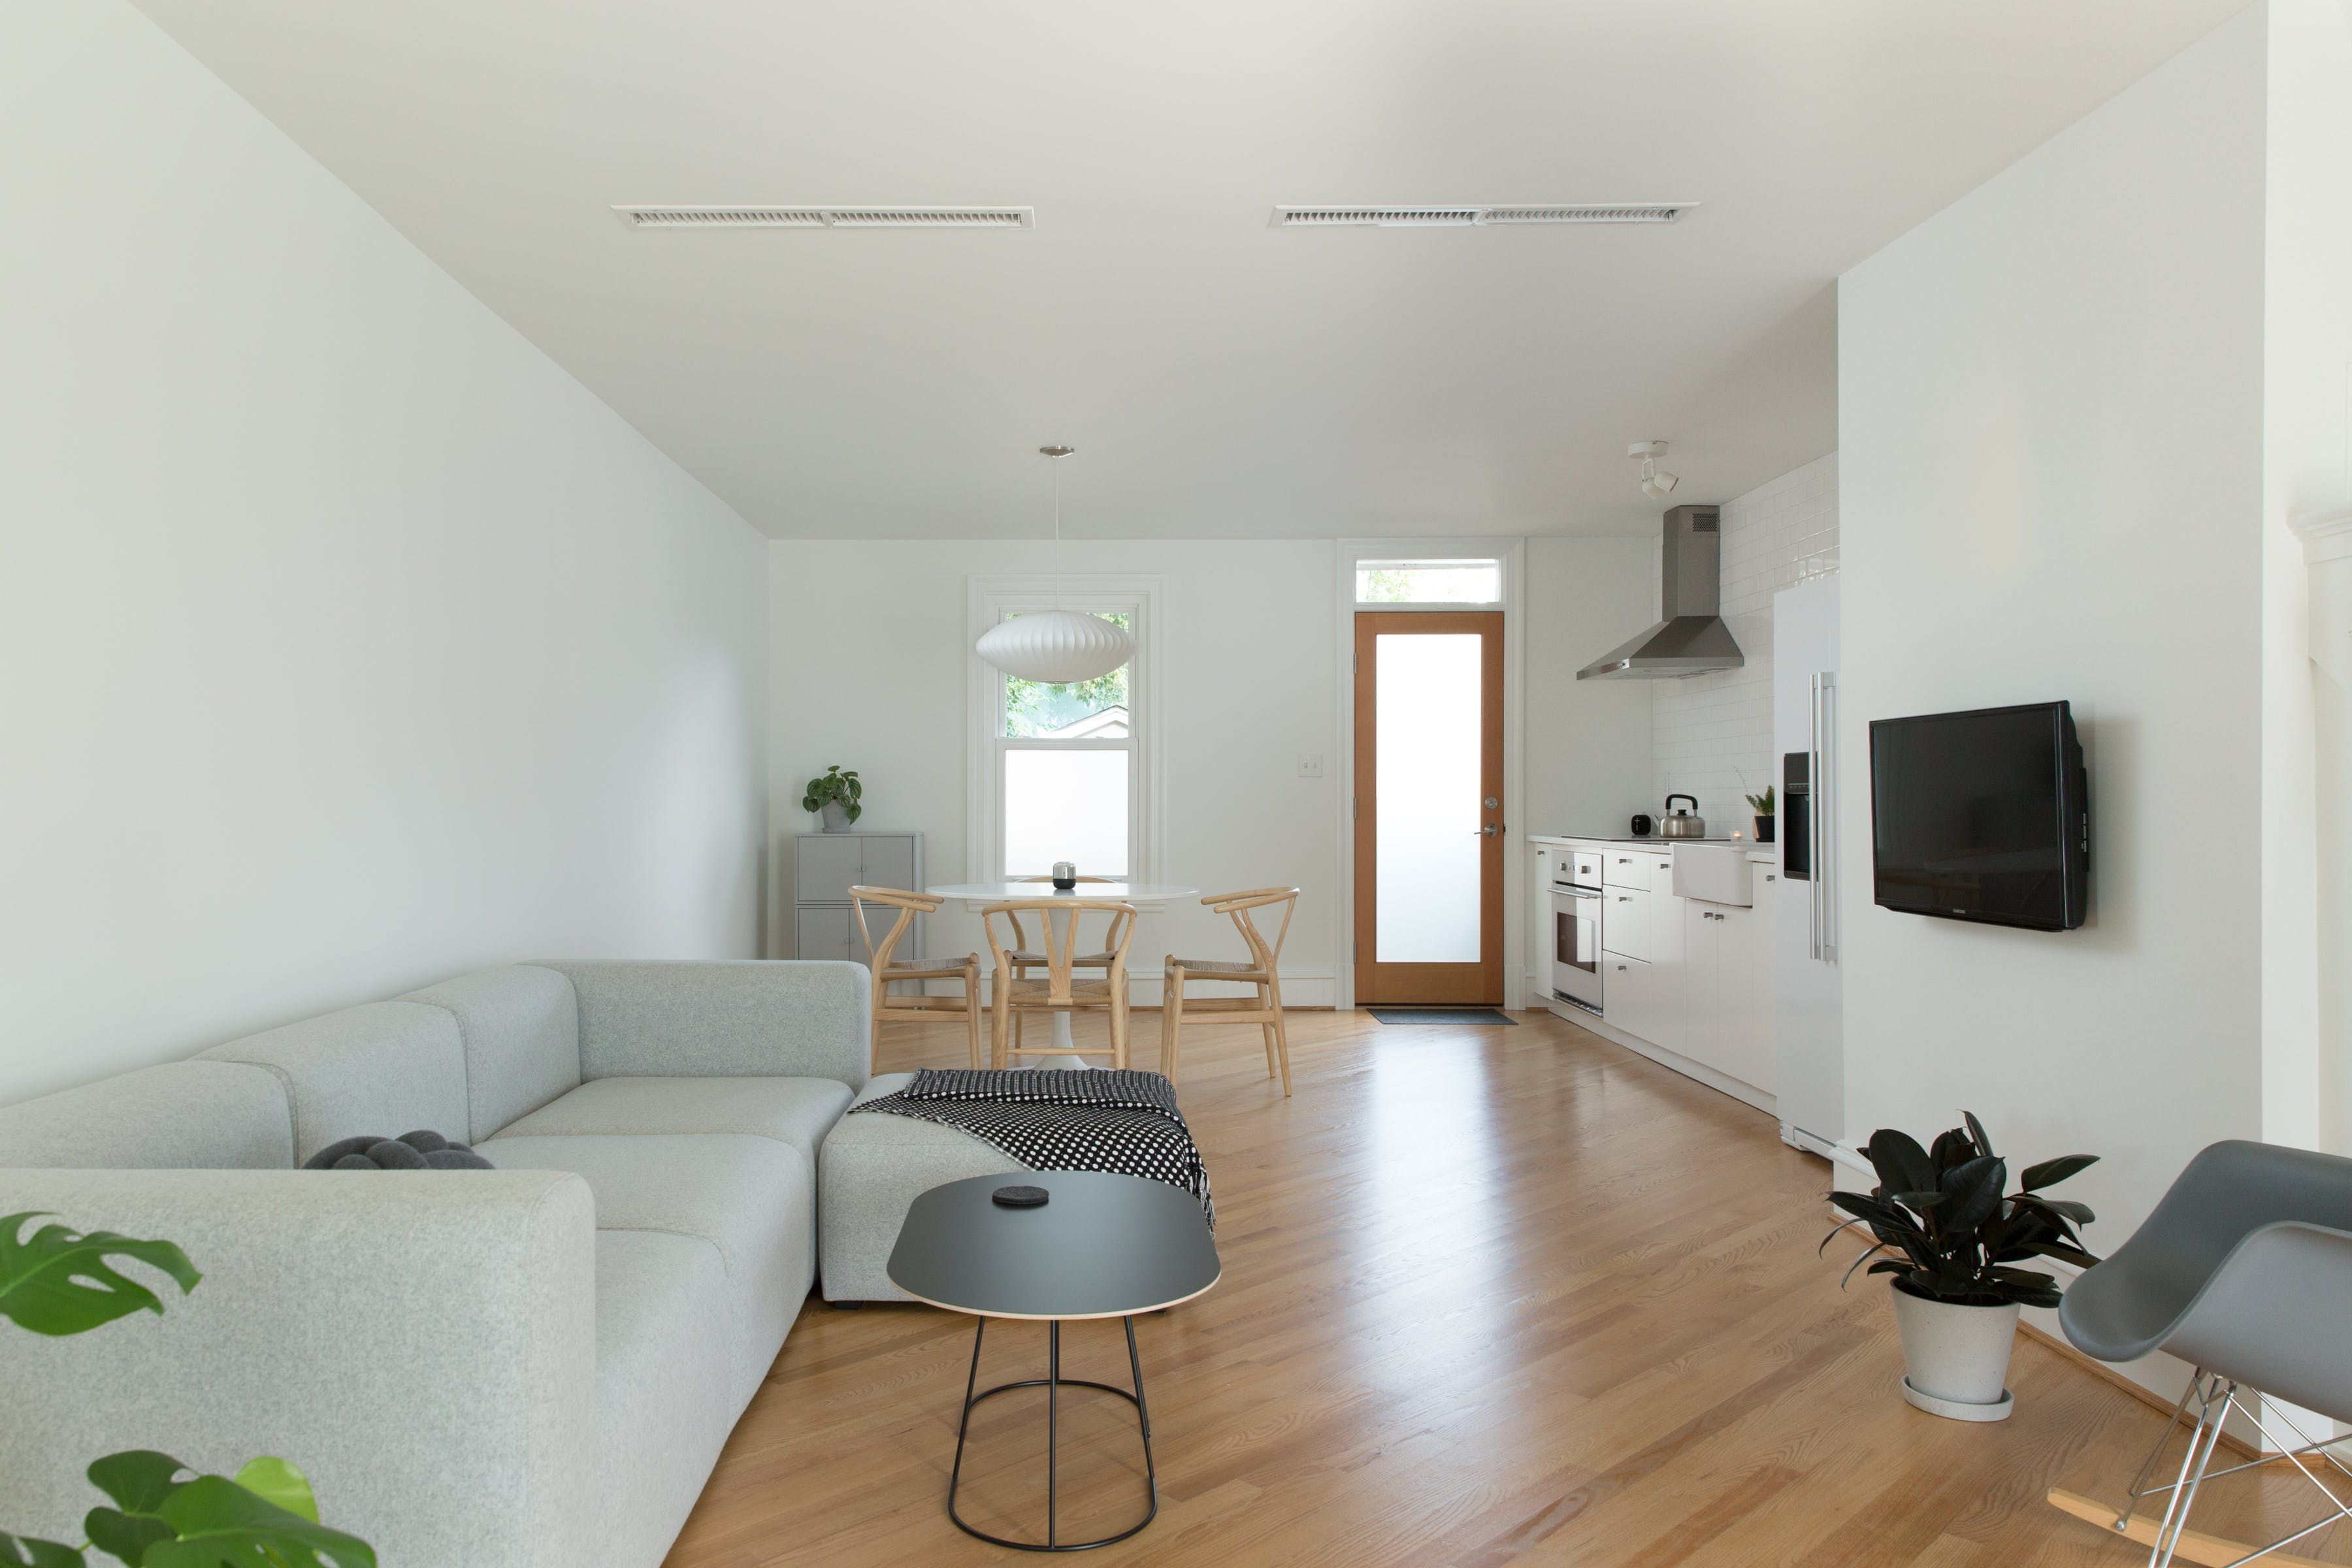 Tour a Pro Organizer\u0027s Exceptionally Serene, Minimal Home | House ...